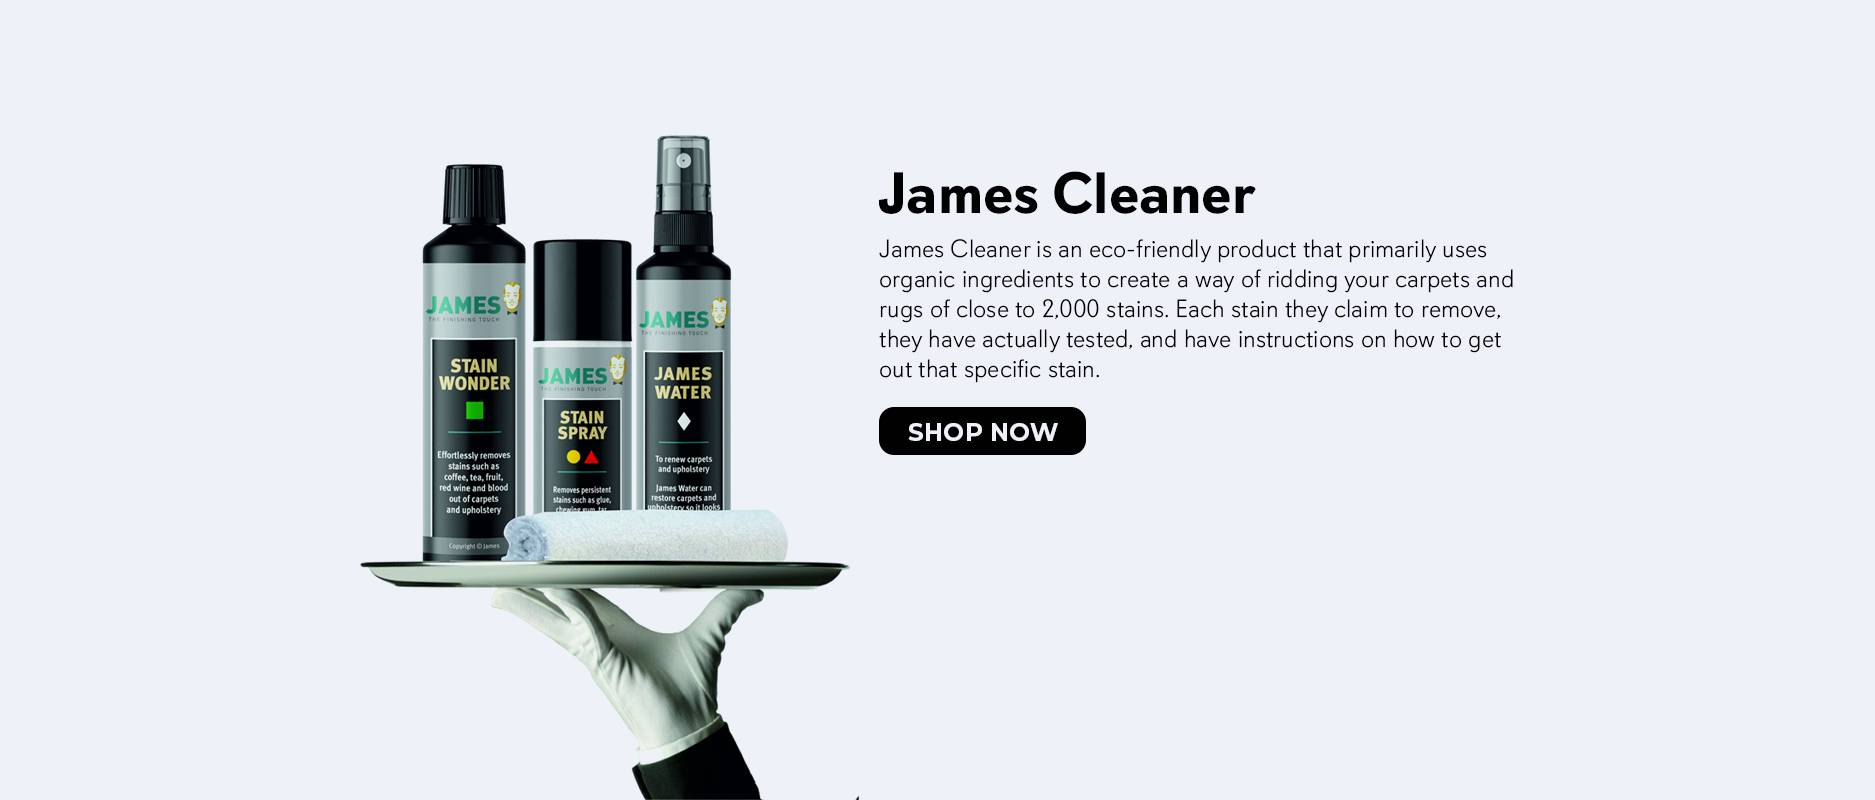 Shop James Cleaner Stain Removing Products on Zoombots.com